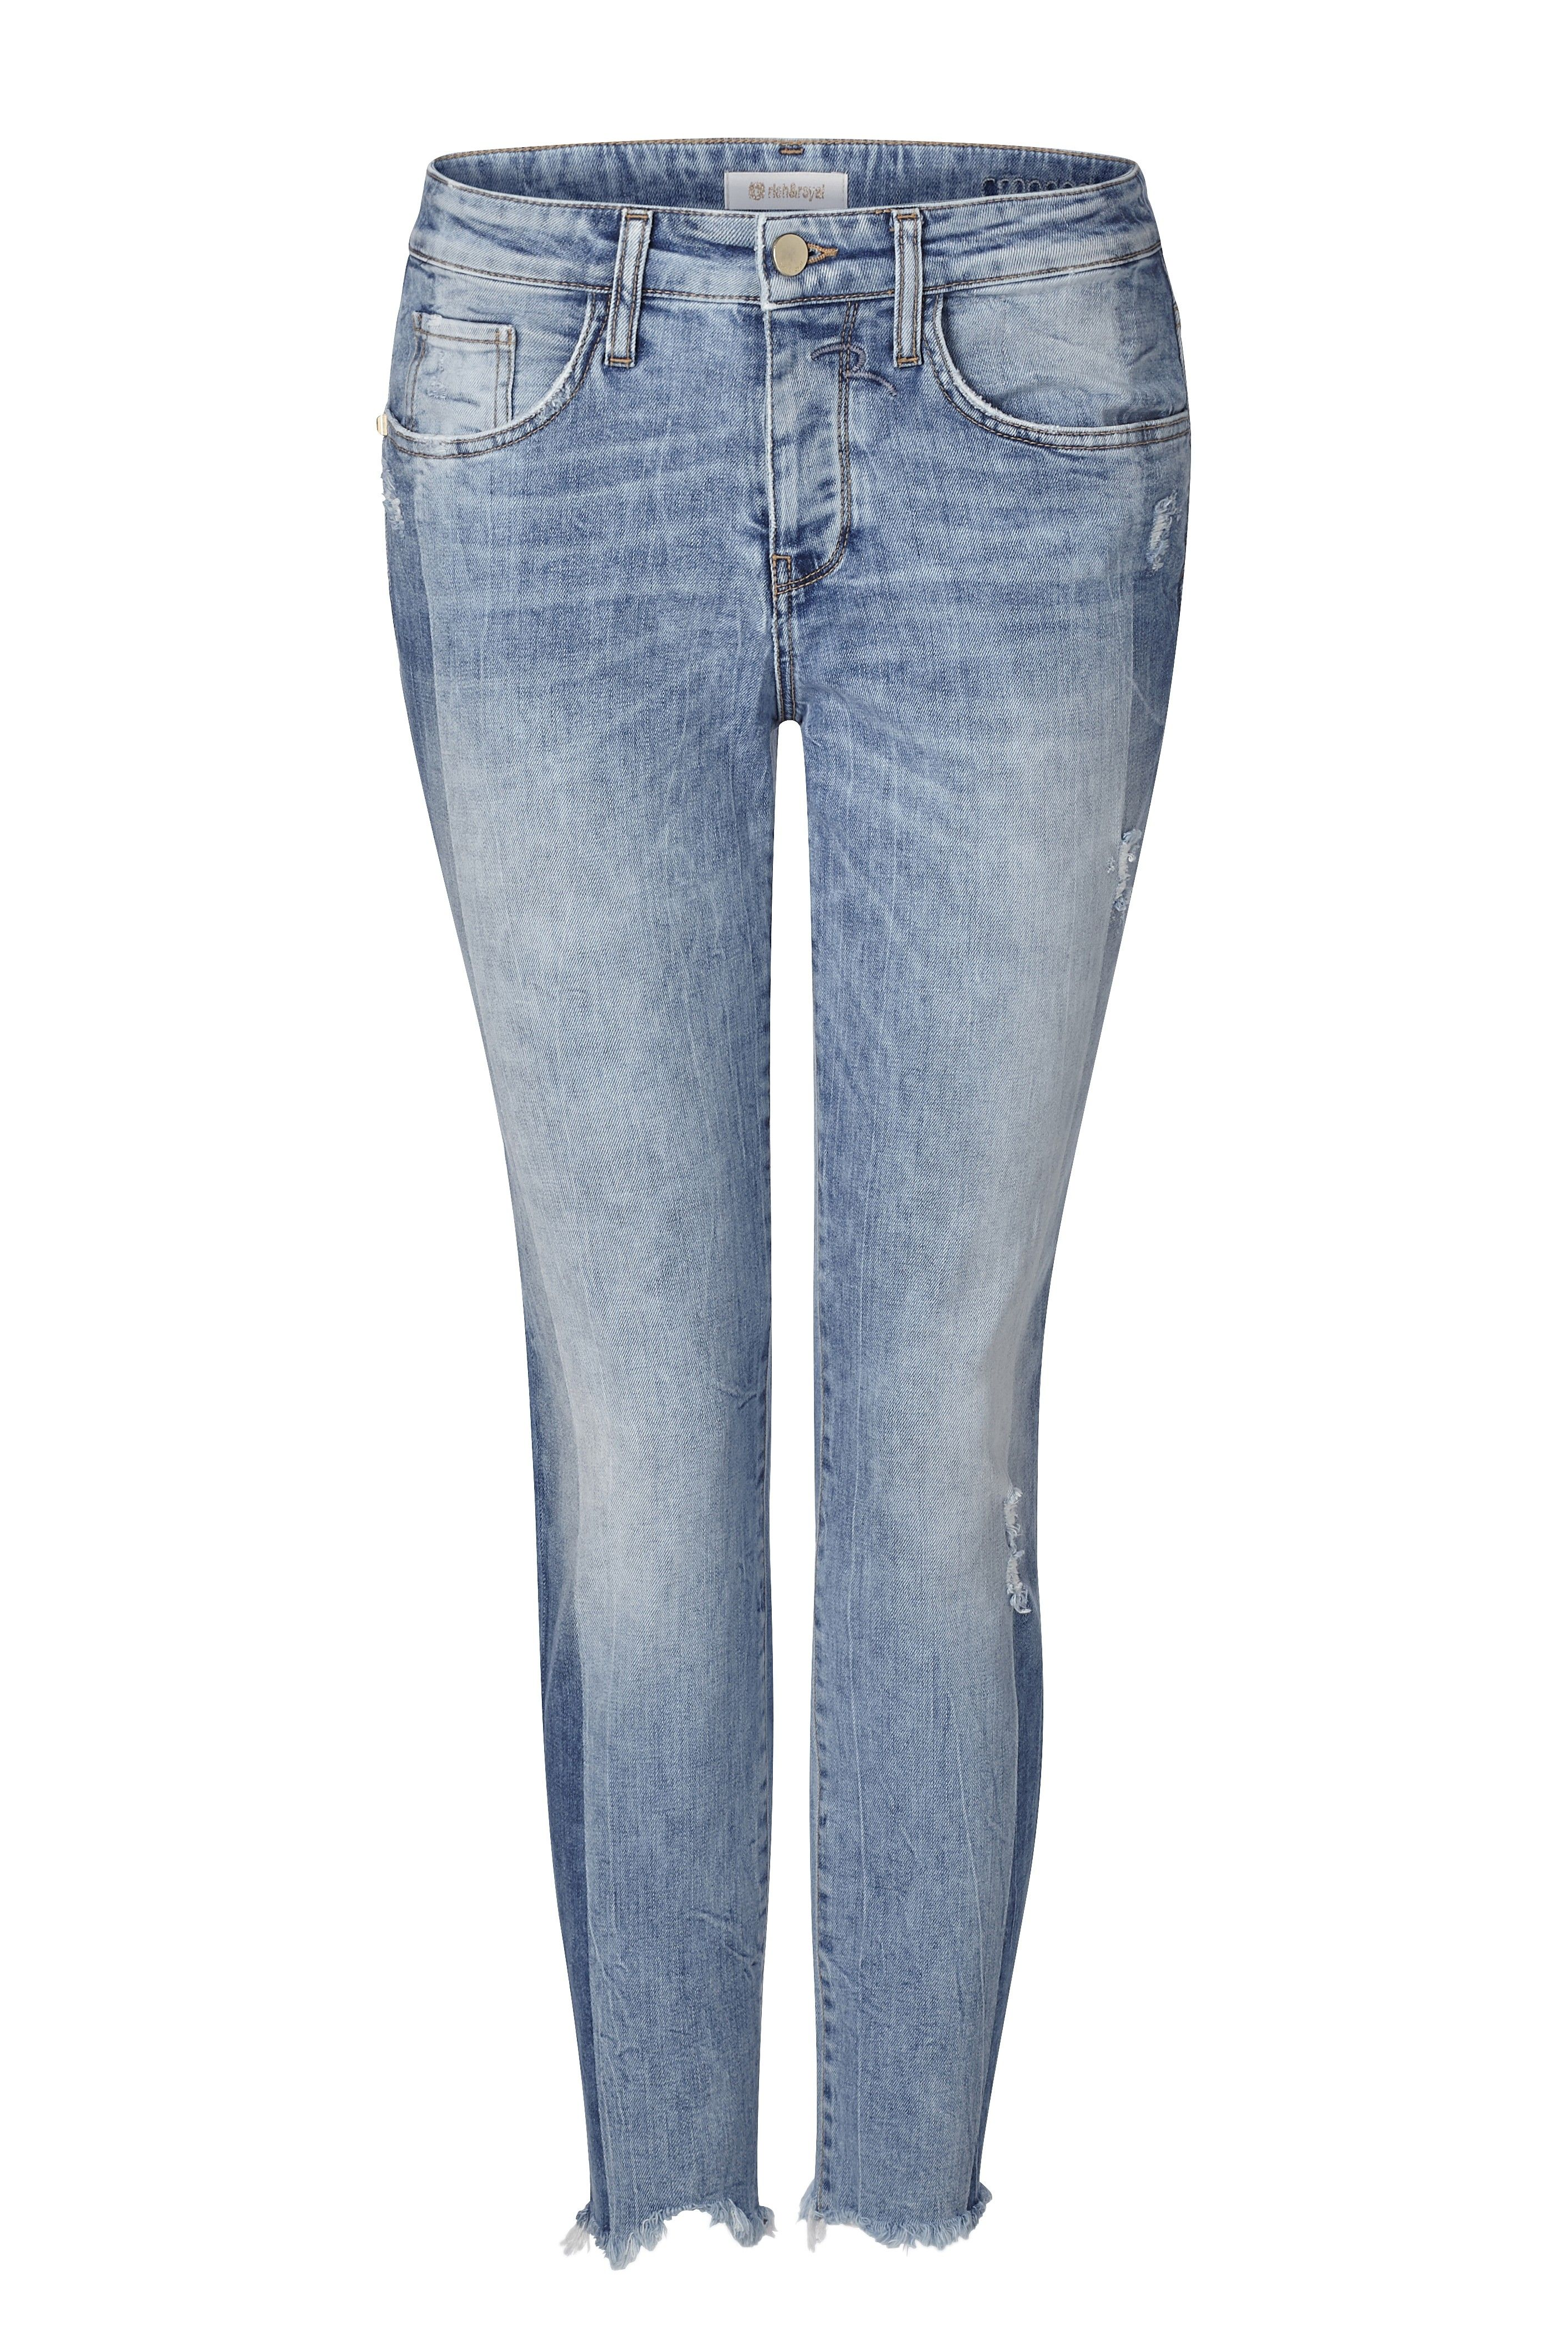 RICH & ROYAL - Damen Jeans - Cropped Relax Vintage Denim - Denim Blue